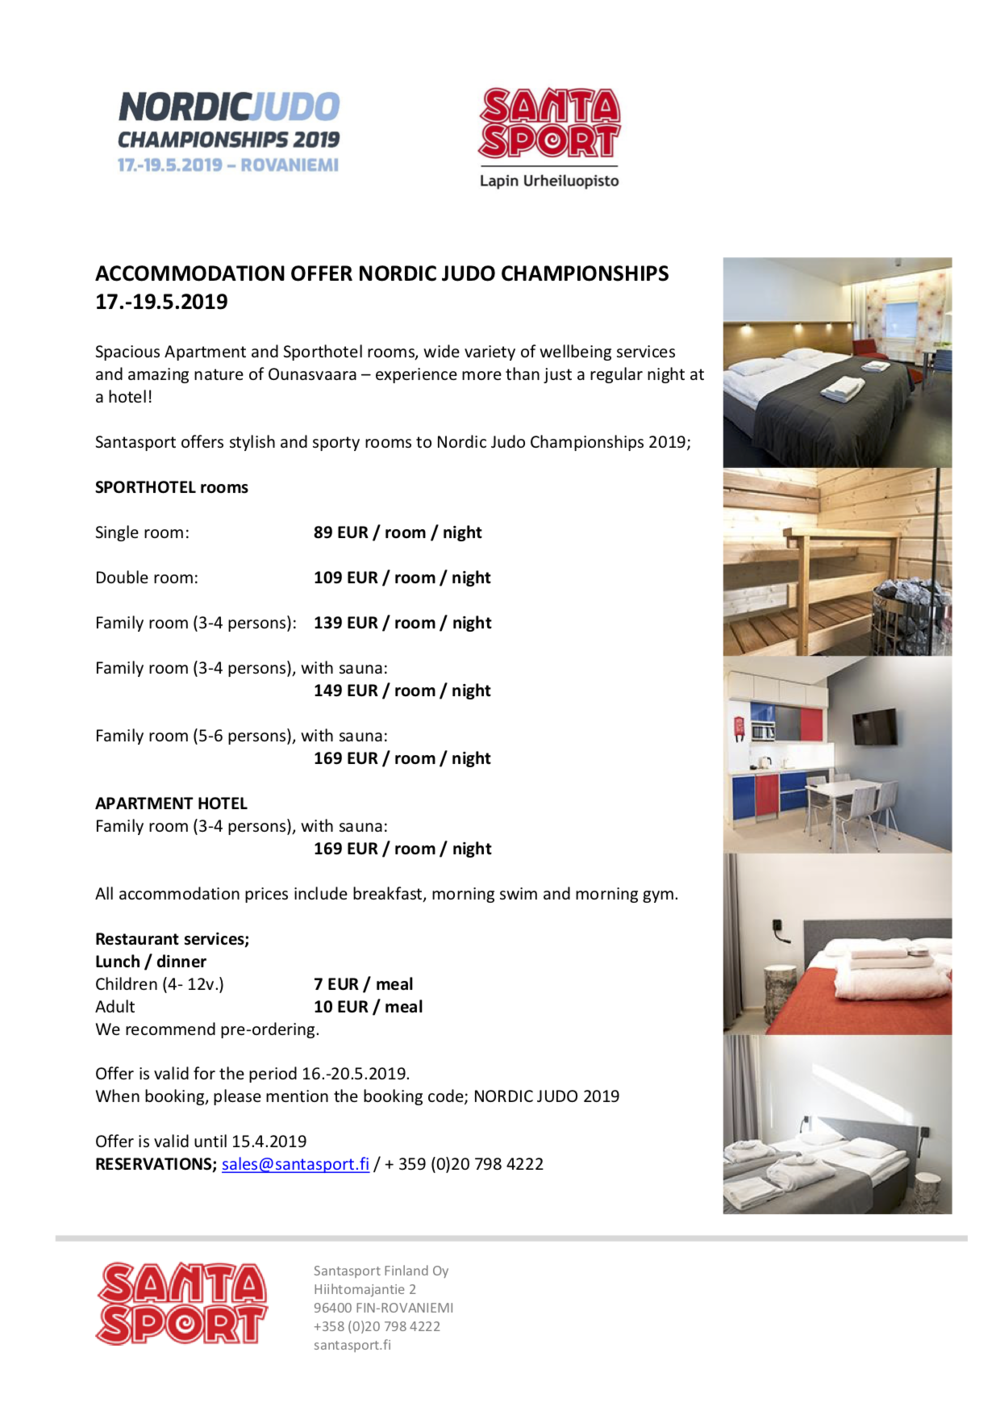 Nordic Judo Championships 2019_Accommodation offer, KH.png